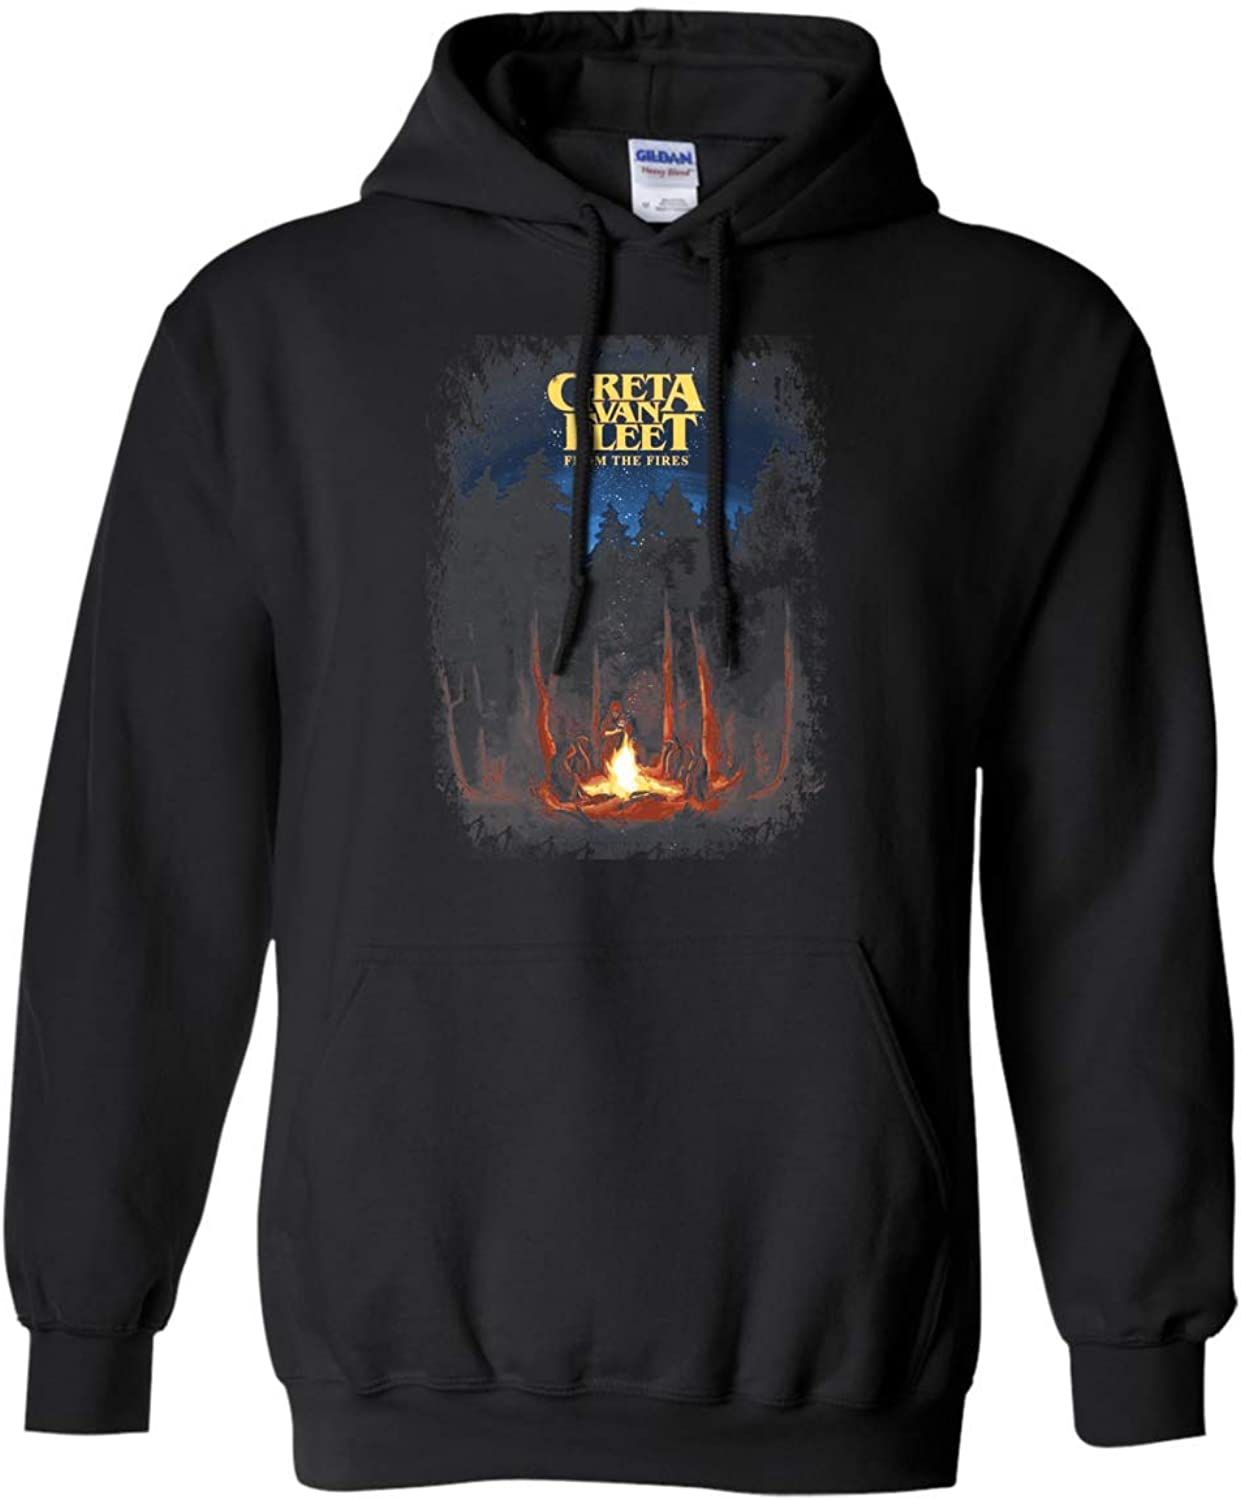 Greta Van Fleet from The Fires Hoodie